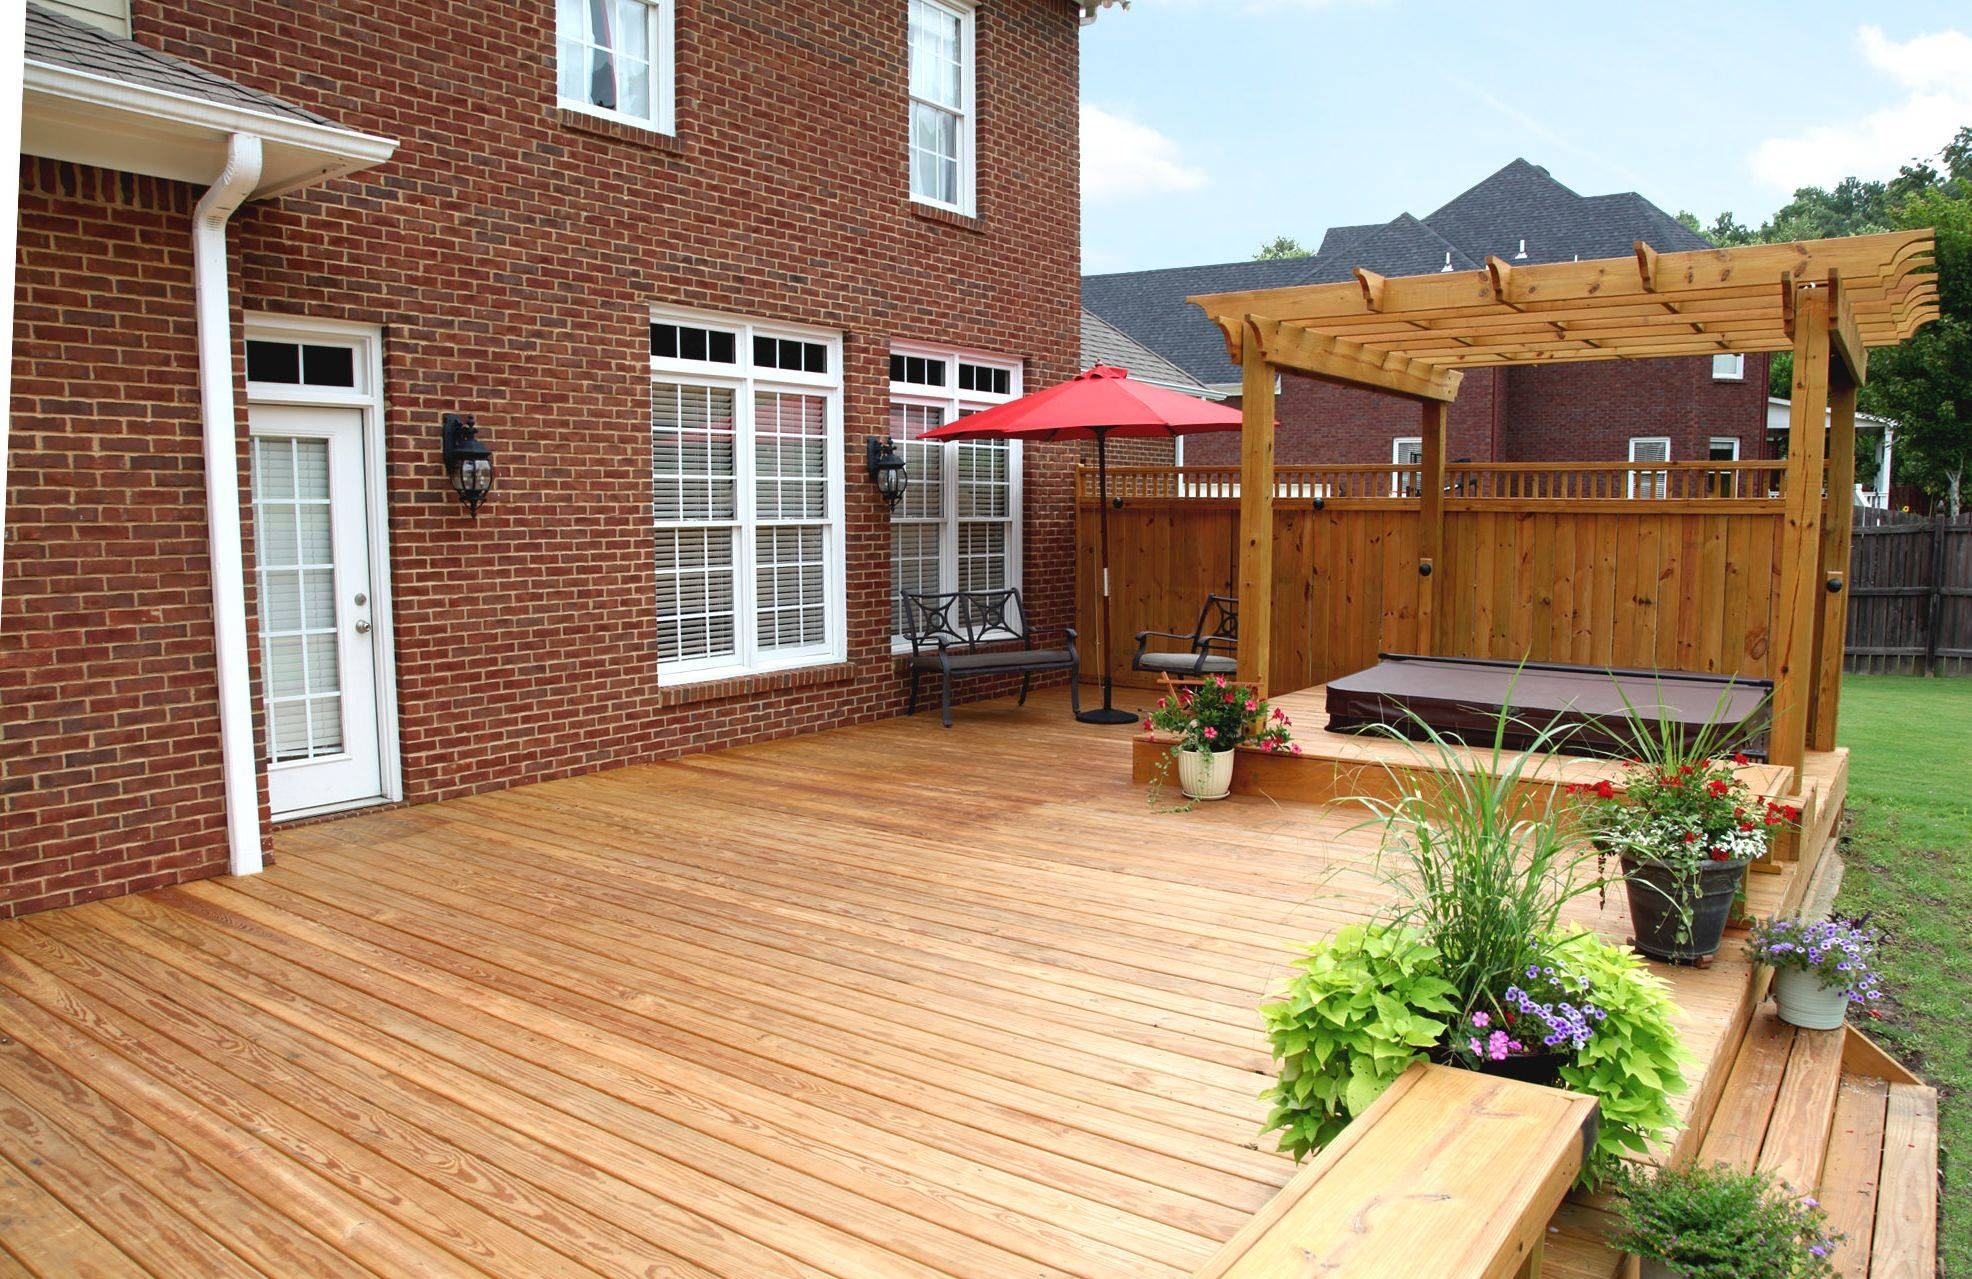 4 considerations to adding a deck to your home